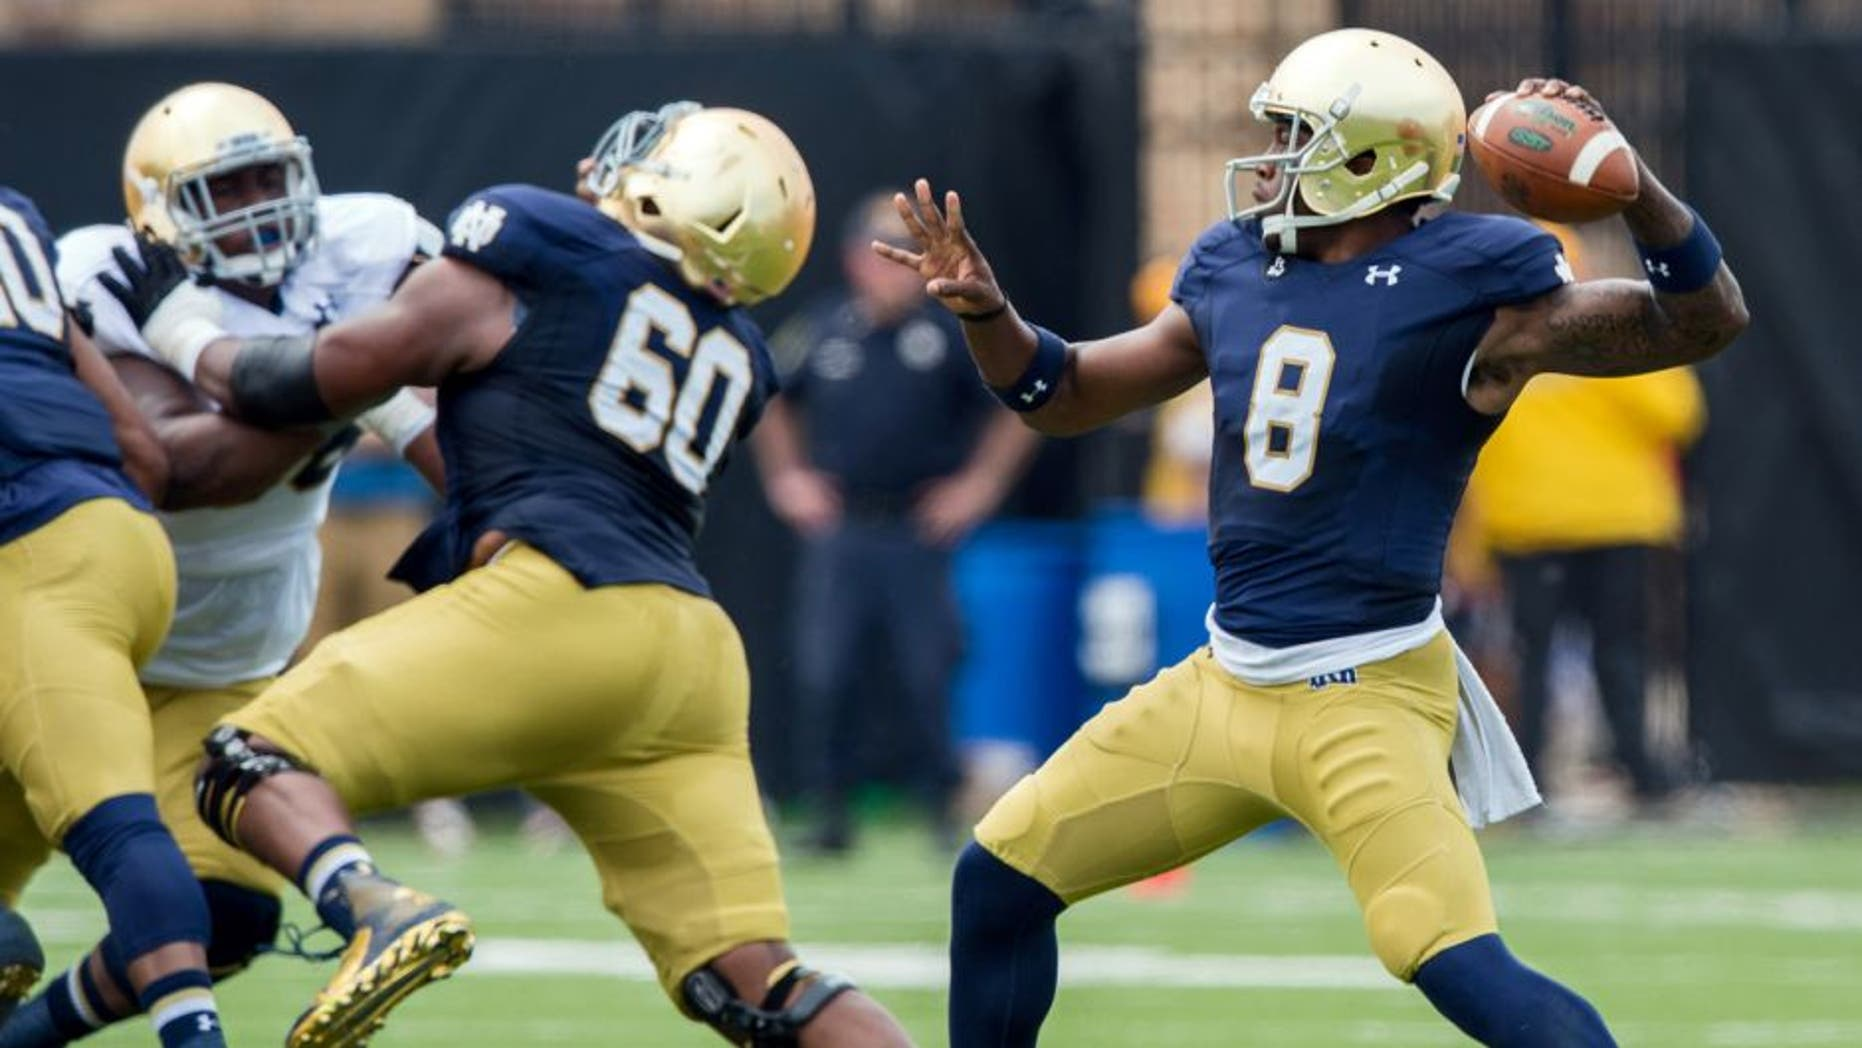 Apr 18, 2015; Notre Dame, IN, USA; Notre Dame Fighting Irish quarterback Malik Zaire (8) throws in the first quarter of the Blue-Gold Game at the LaBar Practice Complex. Mandatory Credit: Matt Cashore-USA TODAY Sports